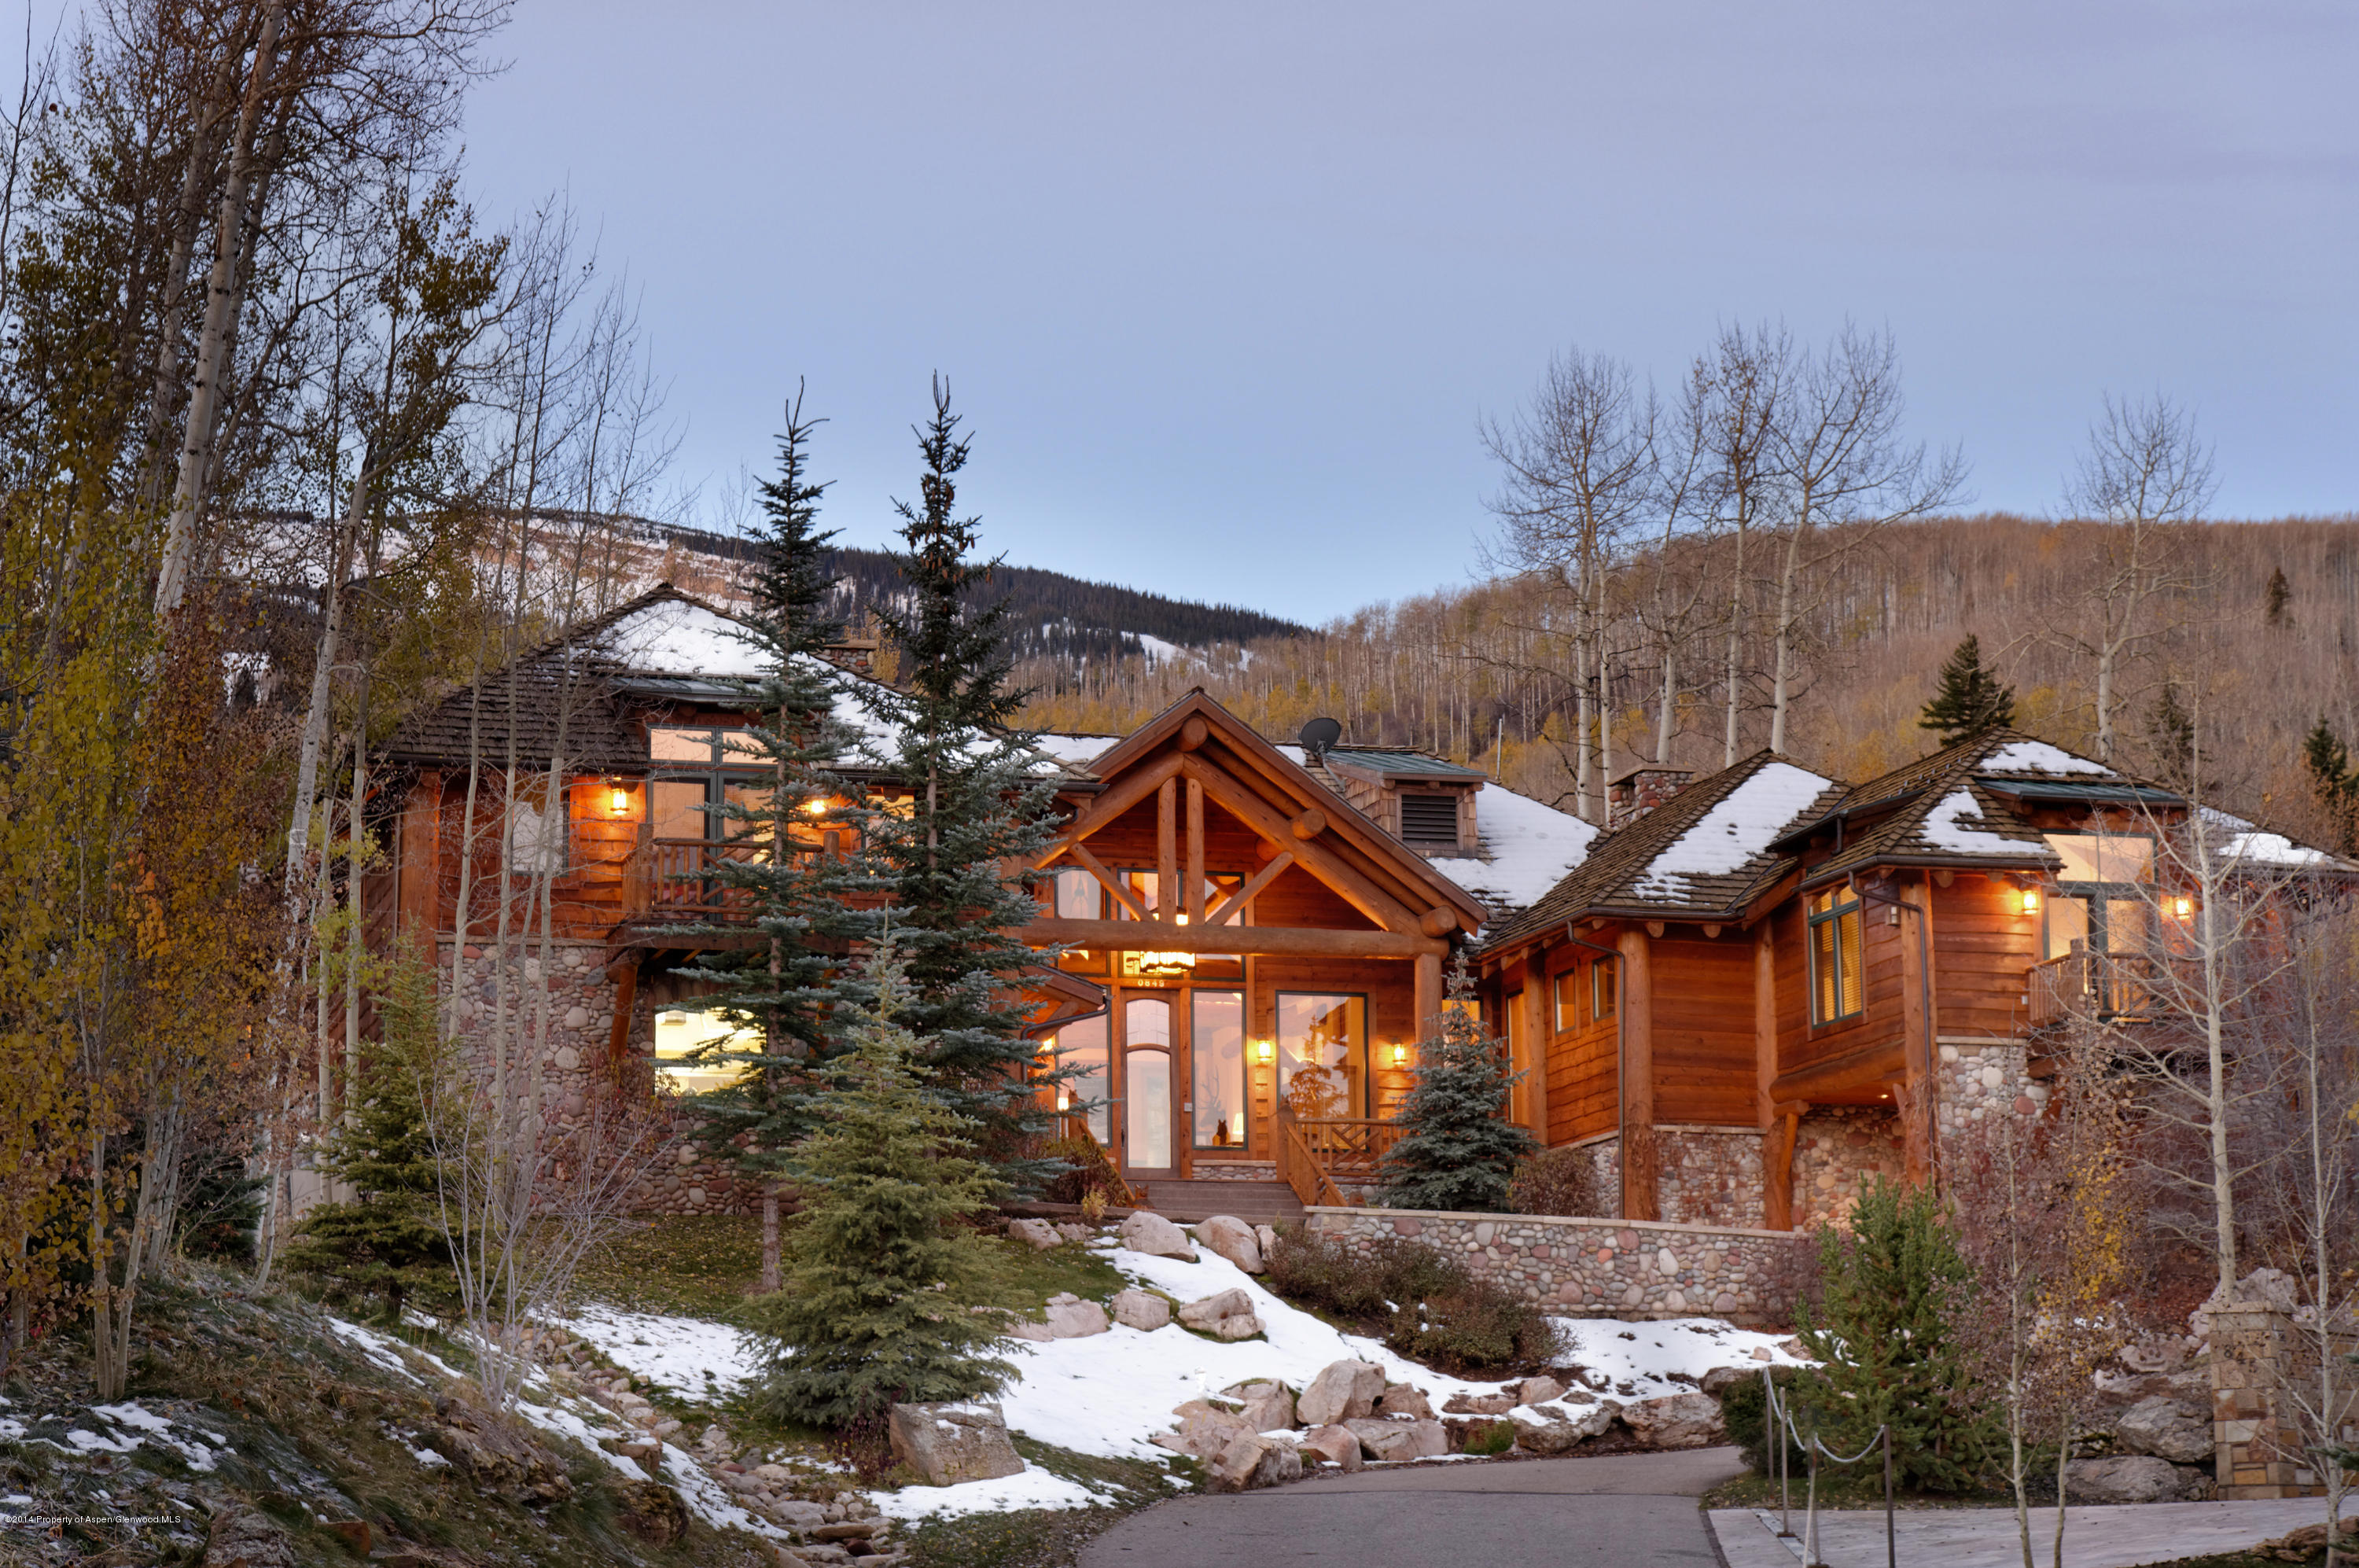 Rental Homes for Rent, ListingId:34791176, location: 849 Serviceberry Lane Snowmass Village 81615